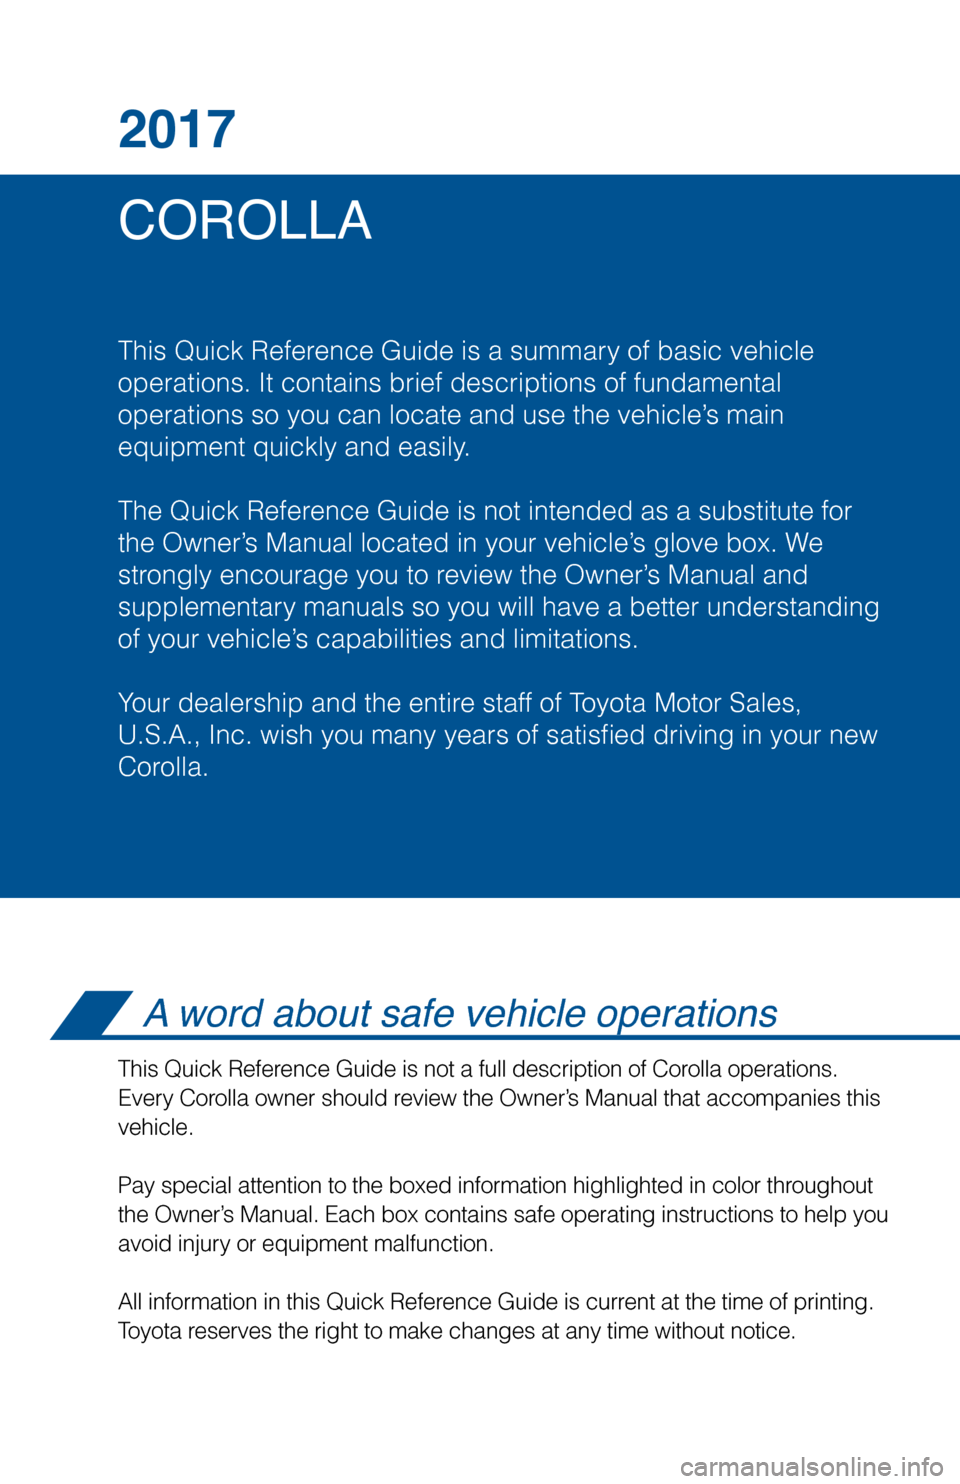 TOYOTA COROLLA 2017 11.G Quick Reference Guide, Page 2